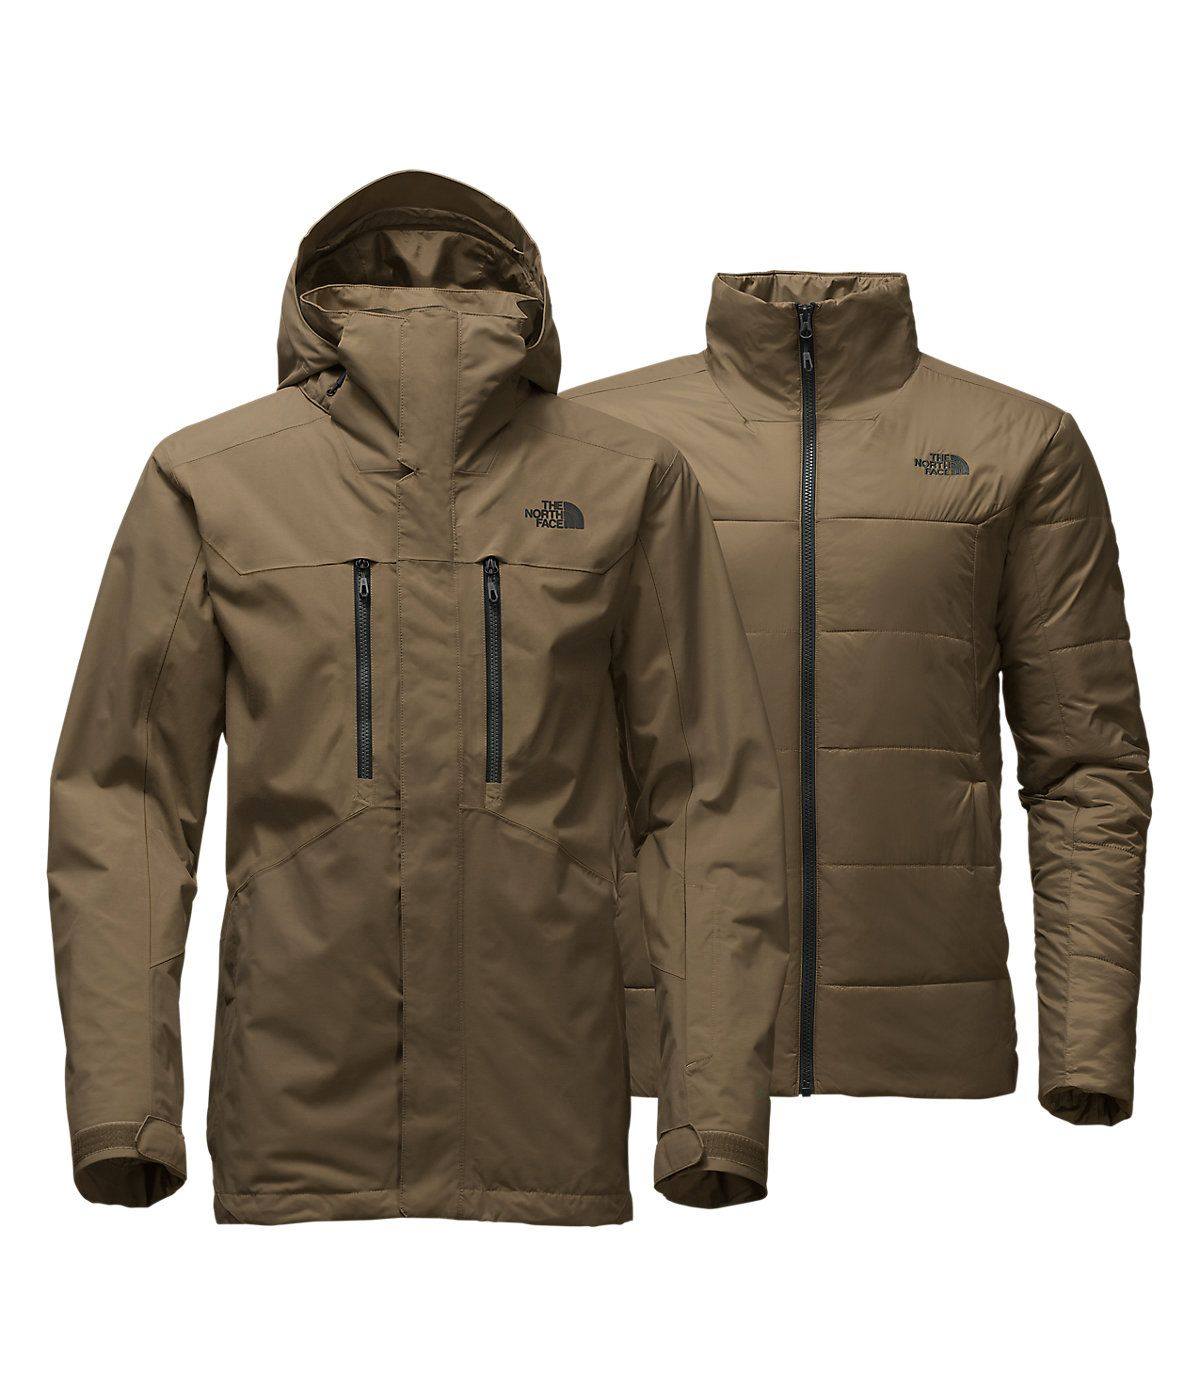 Men S Clement Triclimate Jacket The North Face Mens Jackets Triclimate Jacket Jackets [ 1396 x 1200 Pixel ]